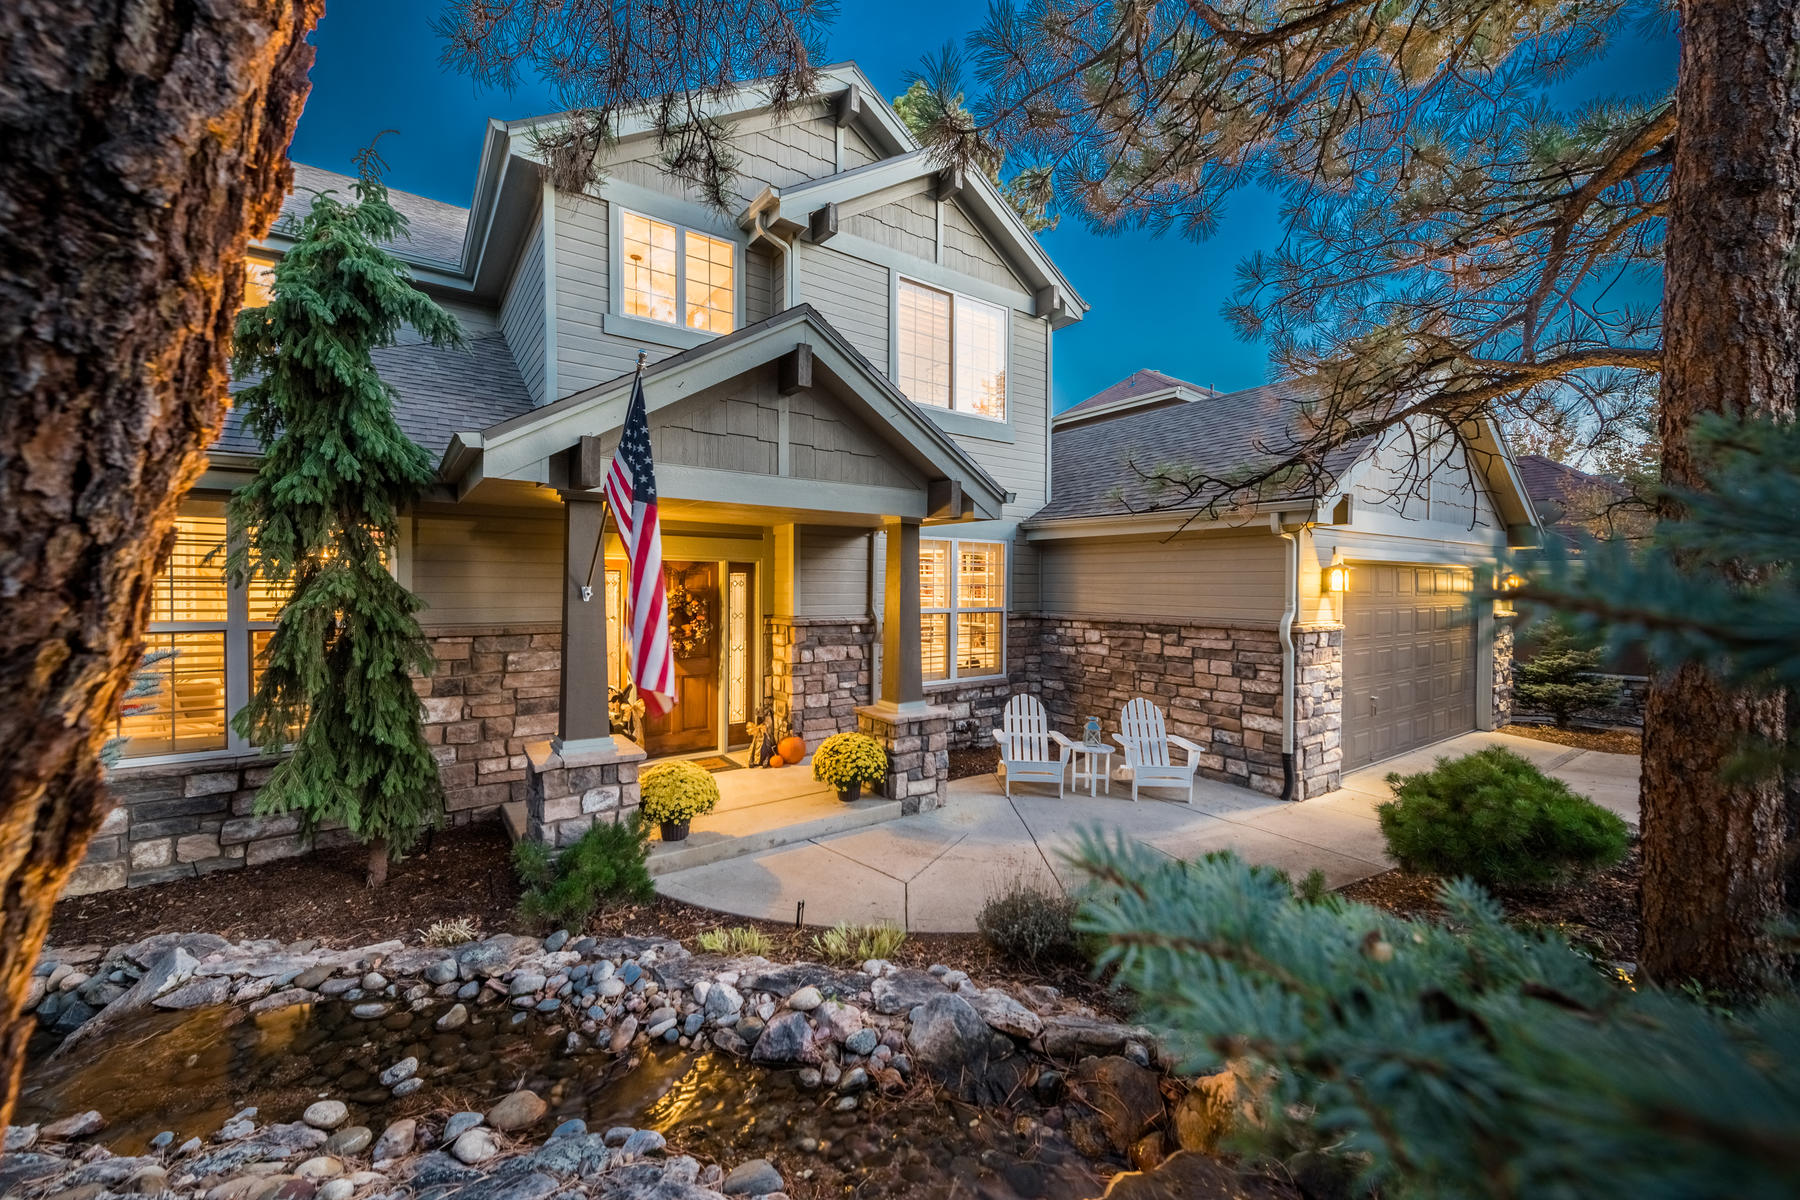 Property for Active at Exquisite Attention To Detail, With Privacy And Views Of Open Space 7074 Timbercrest Way Castle Pines, Colorado 80108 United States